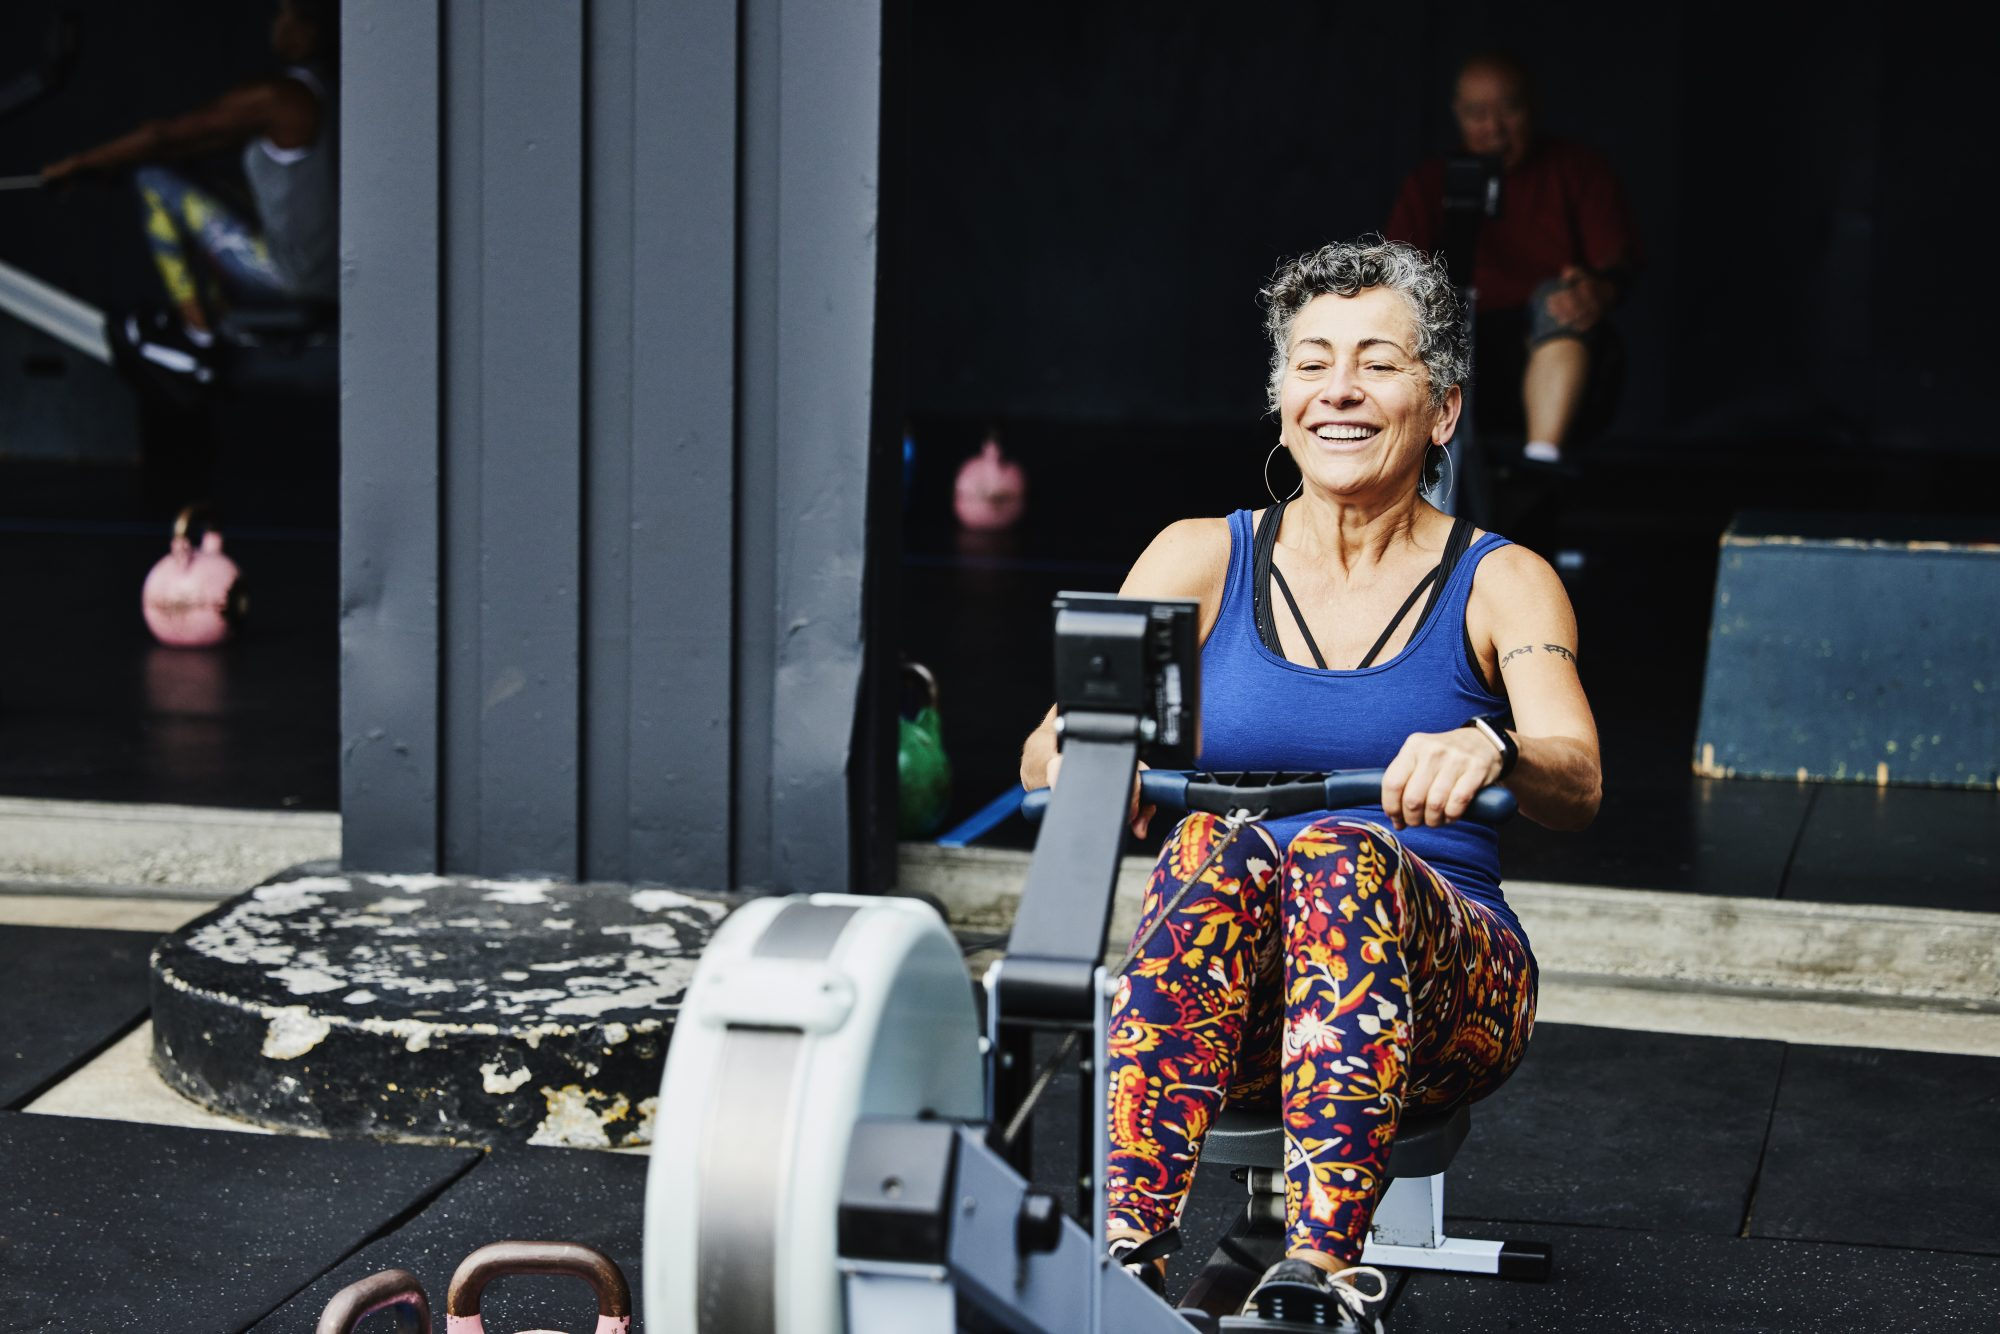 mature woman exercising on rowing machine outdoors